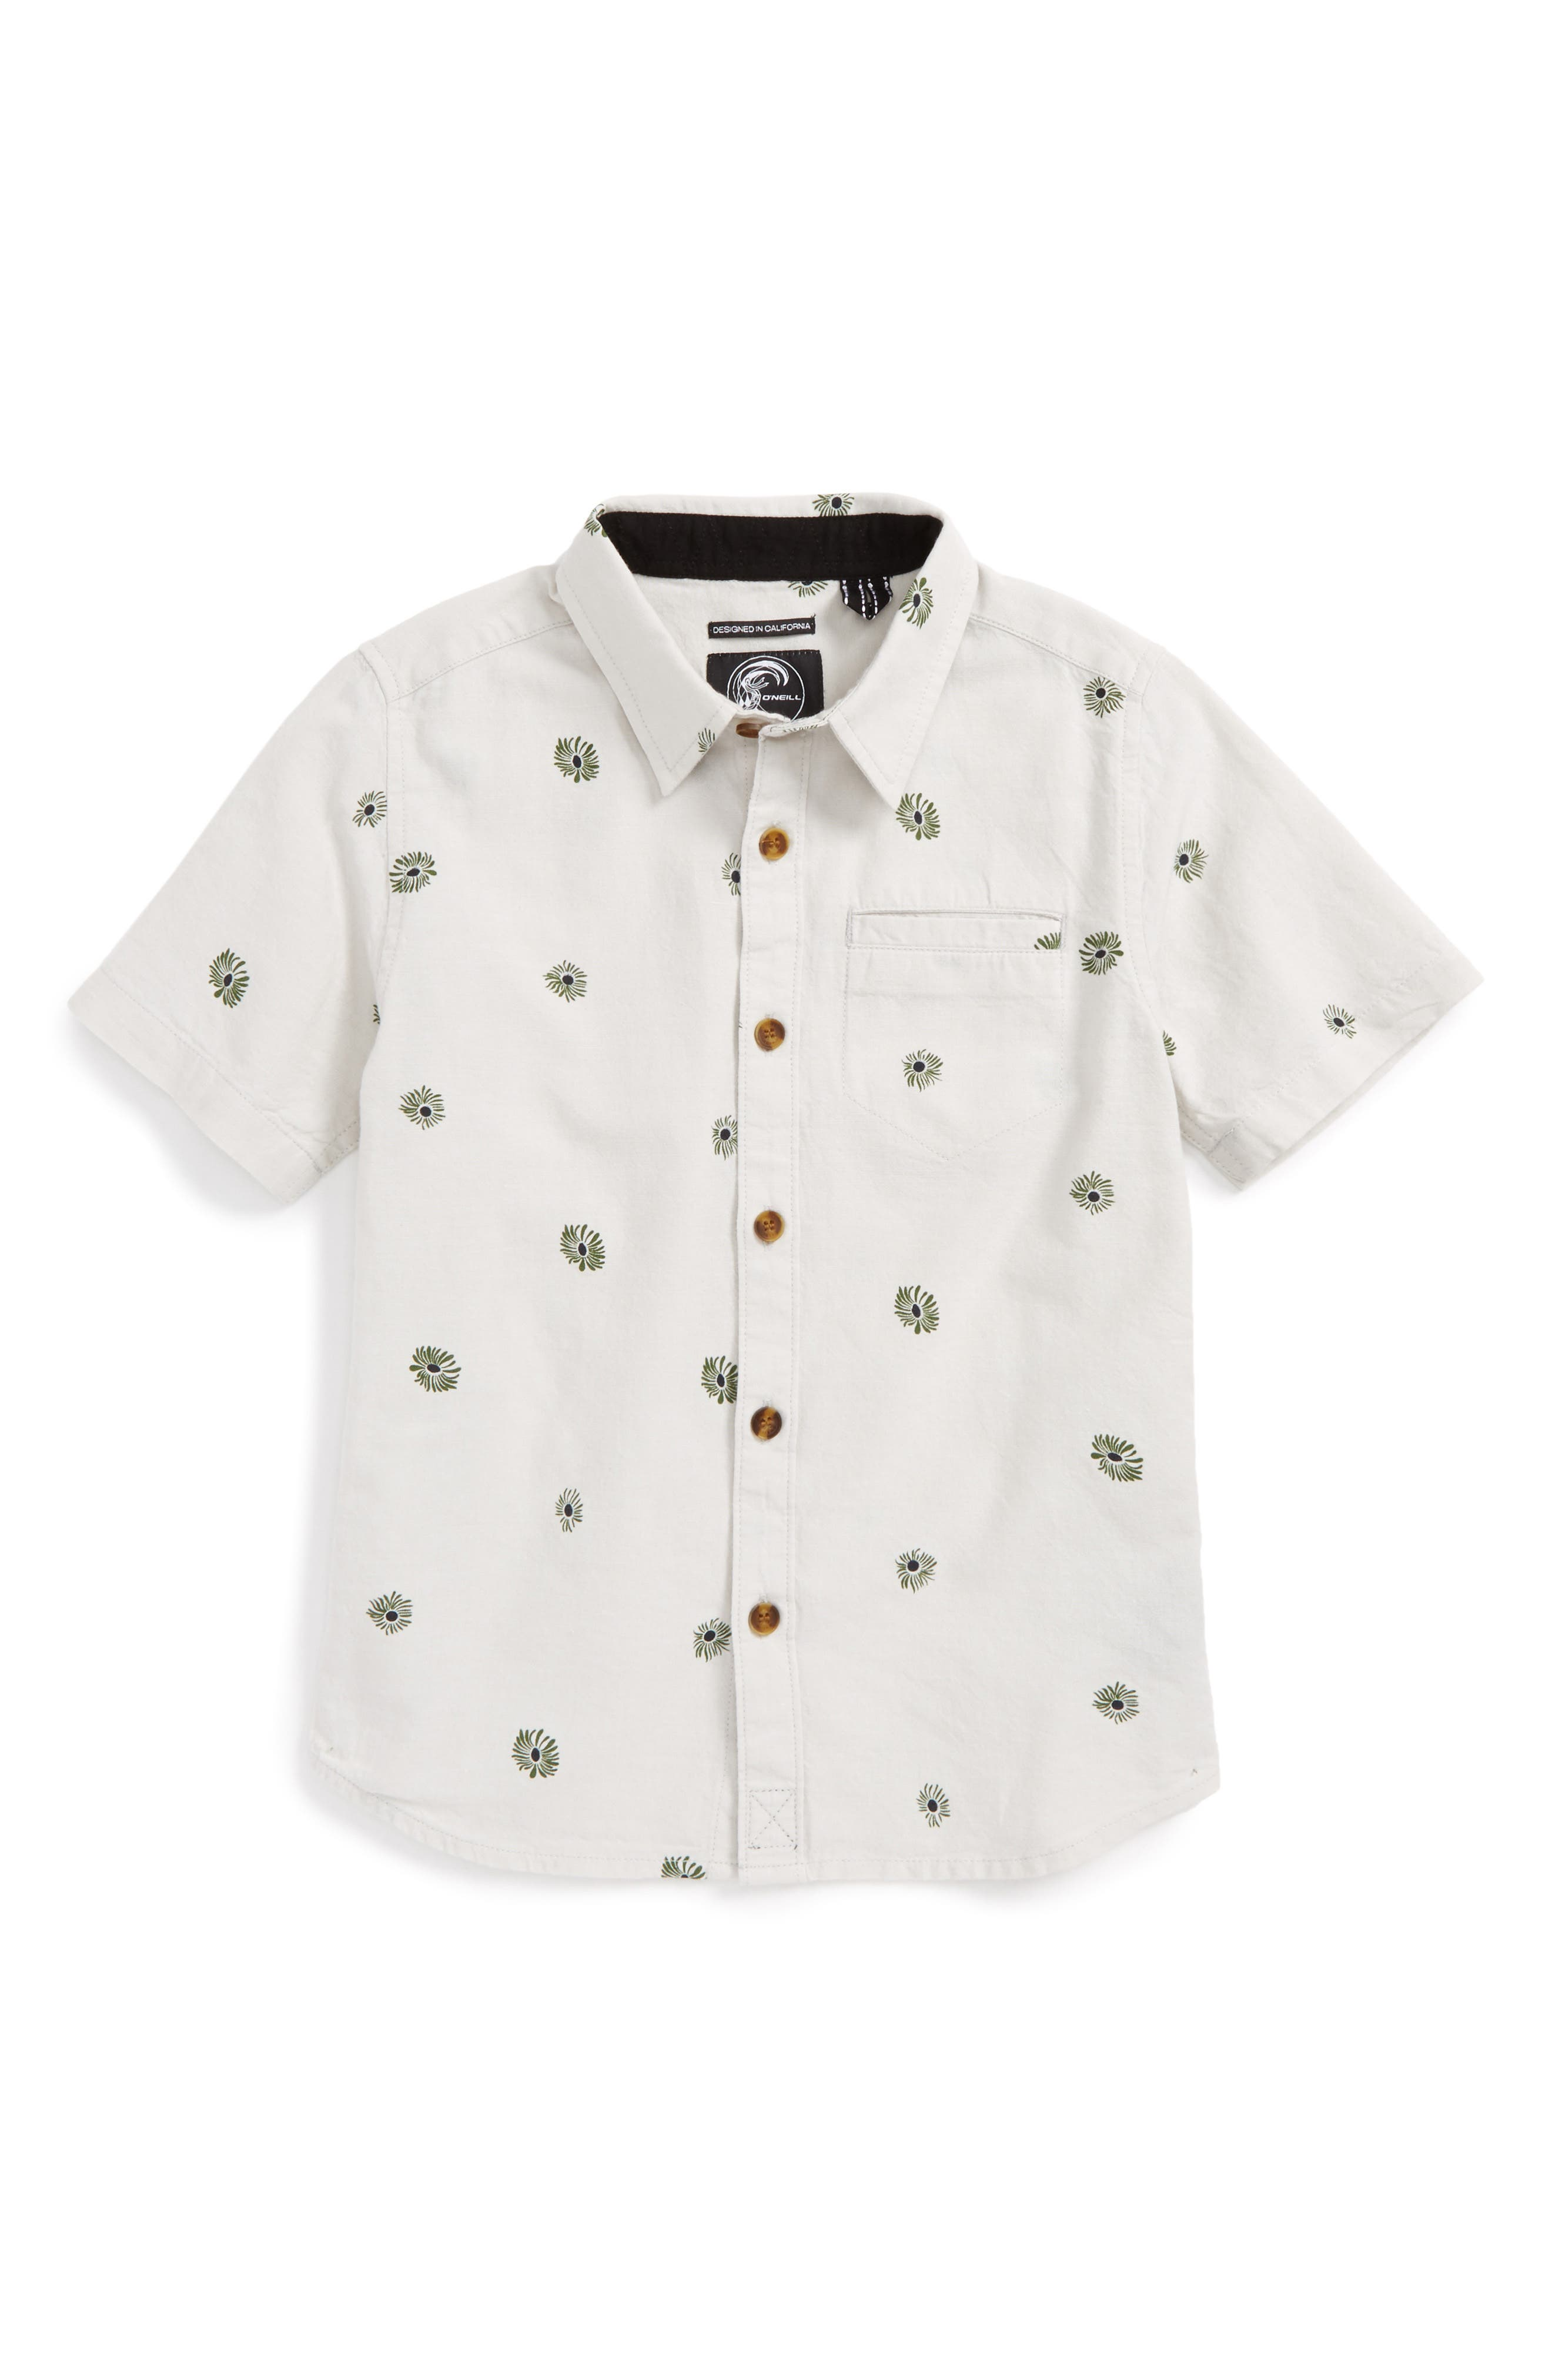 O'Neill Brees Short Sleeve Woven Shirt (Little Boys)